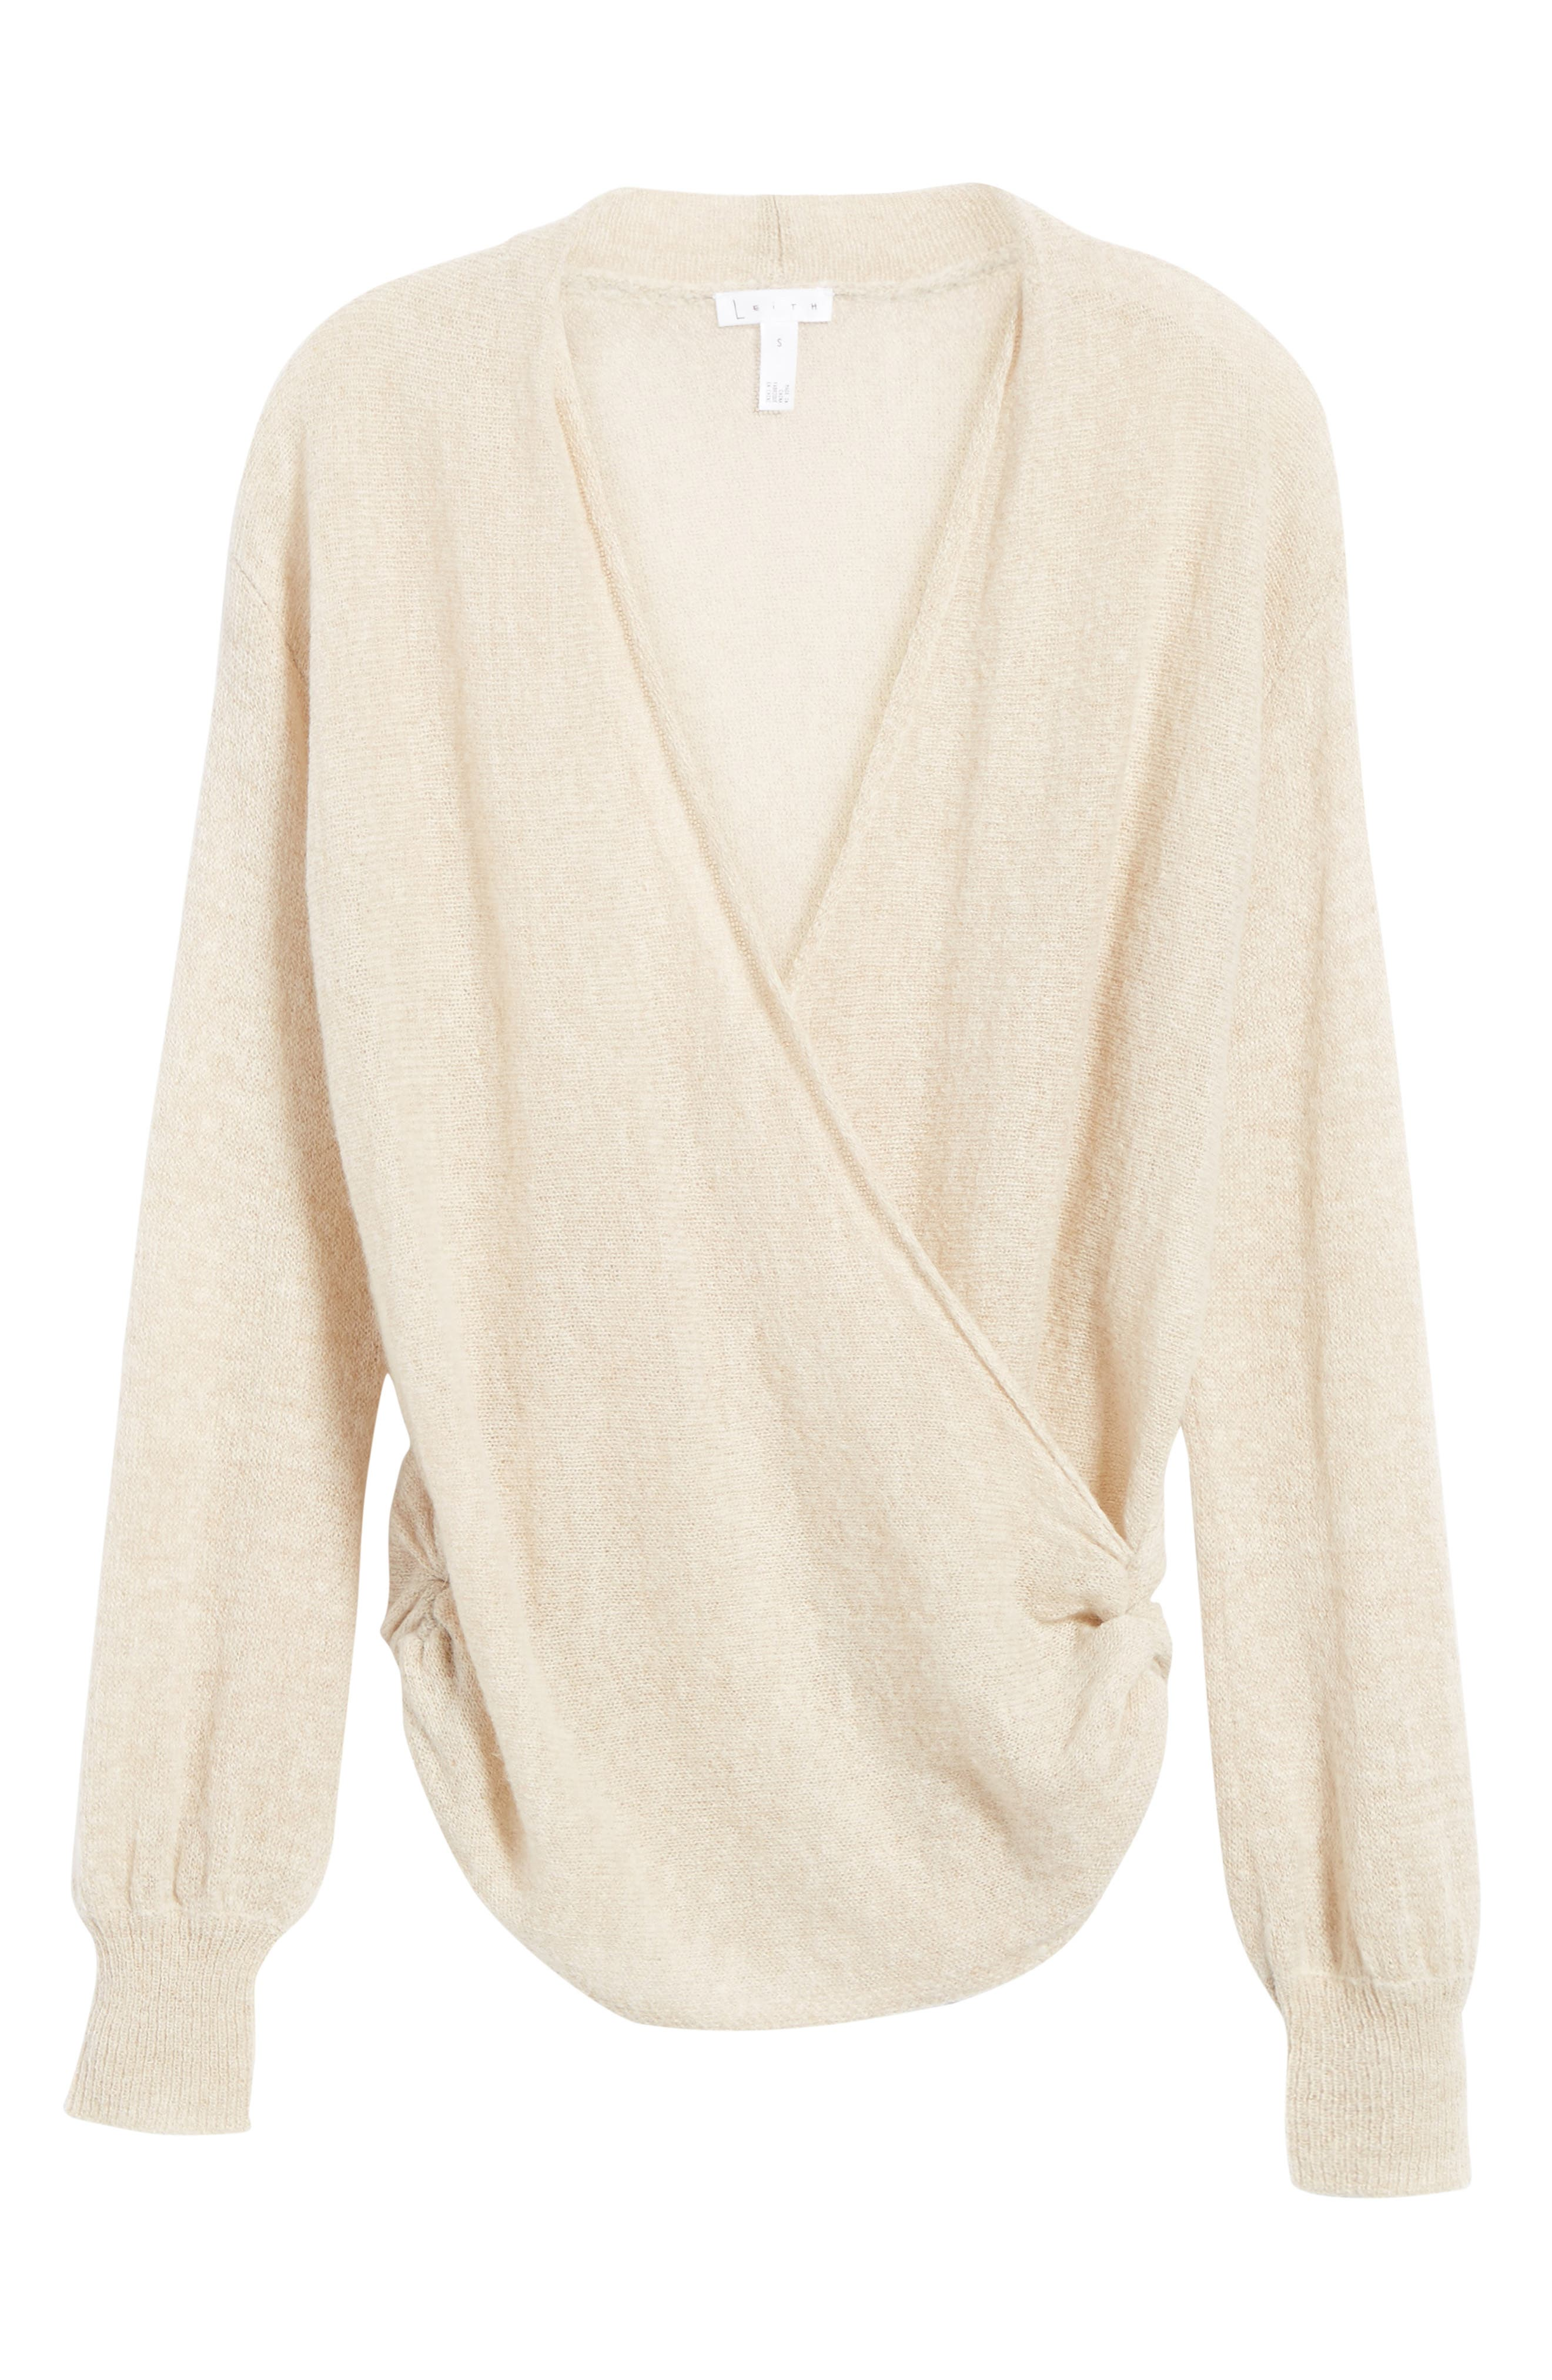 Wrap Front Sweater,                             Alternate thumbnail 6, color,                             235